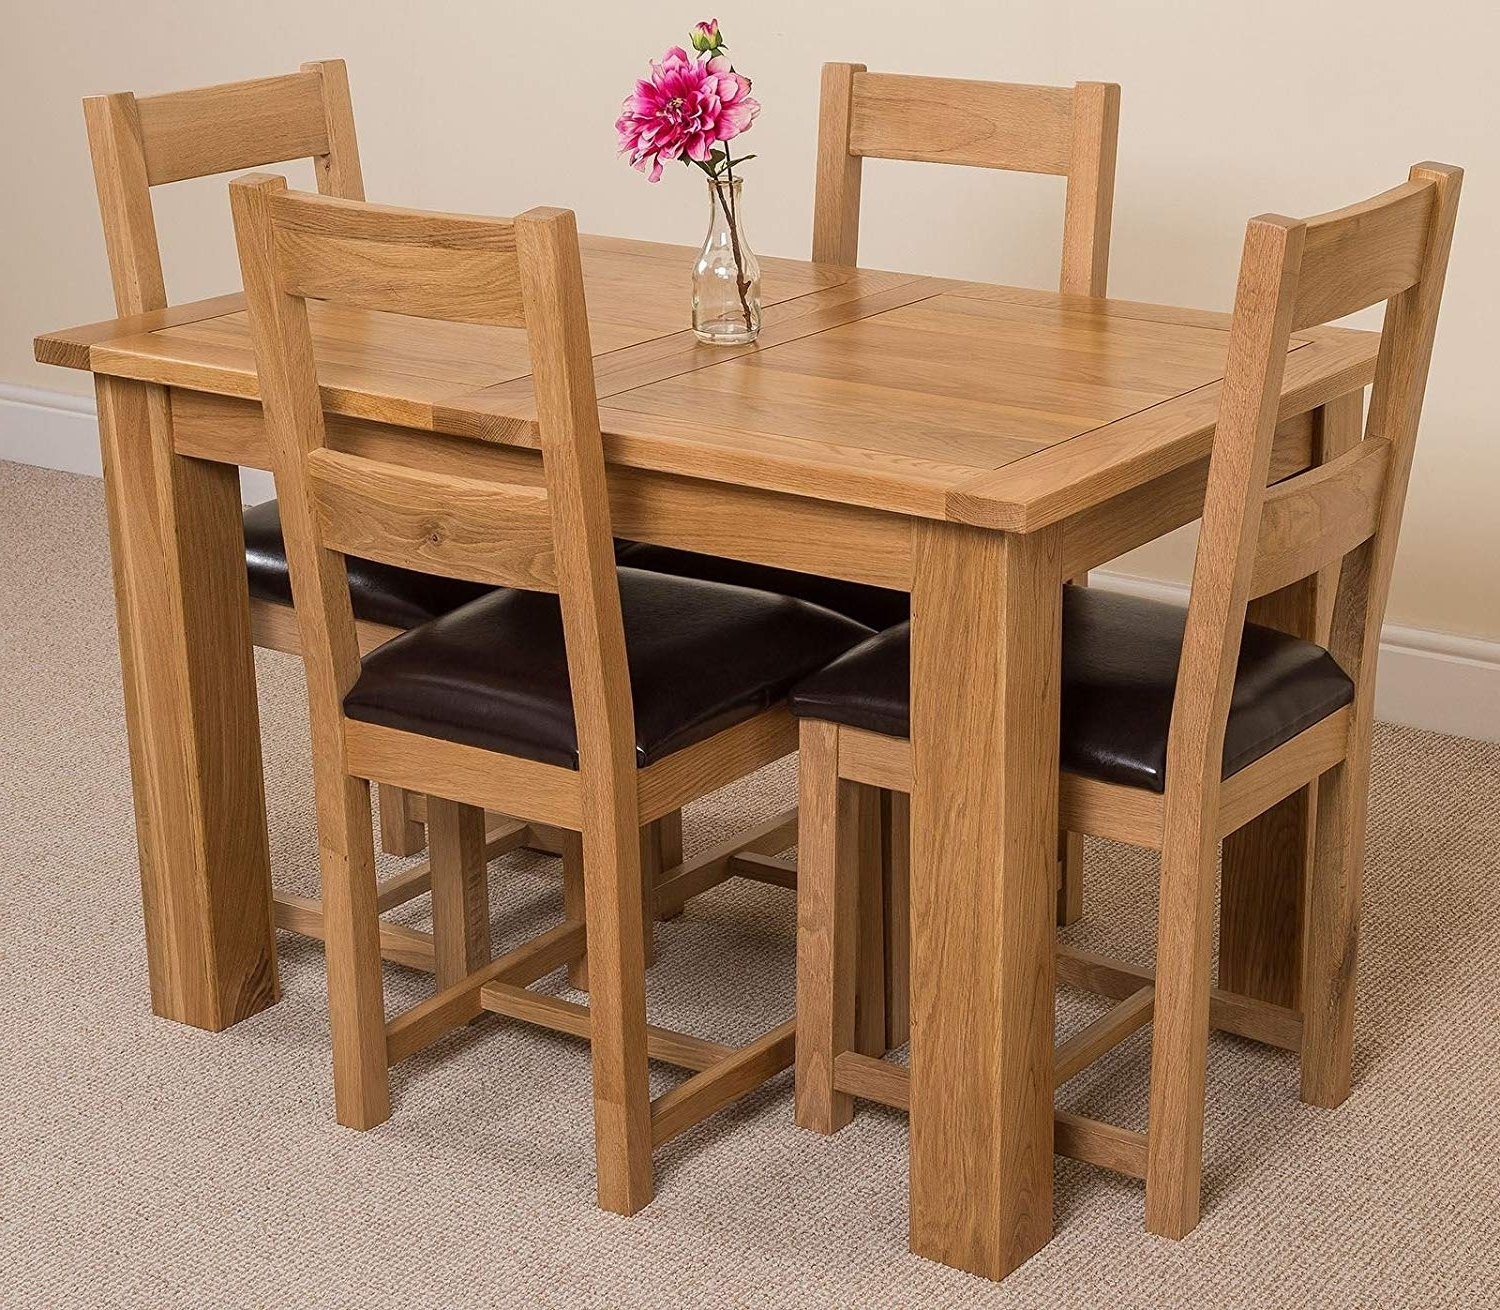 Hampton Solid Oak (120 160 Cm) Extending Dining Table & 4 Lincoln In Most Recently Released Extending Dining Tables Sets (View 18 of 25)